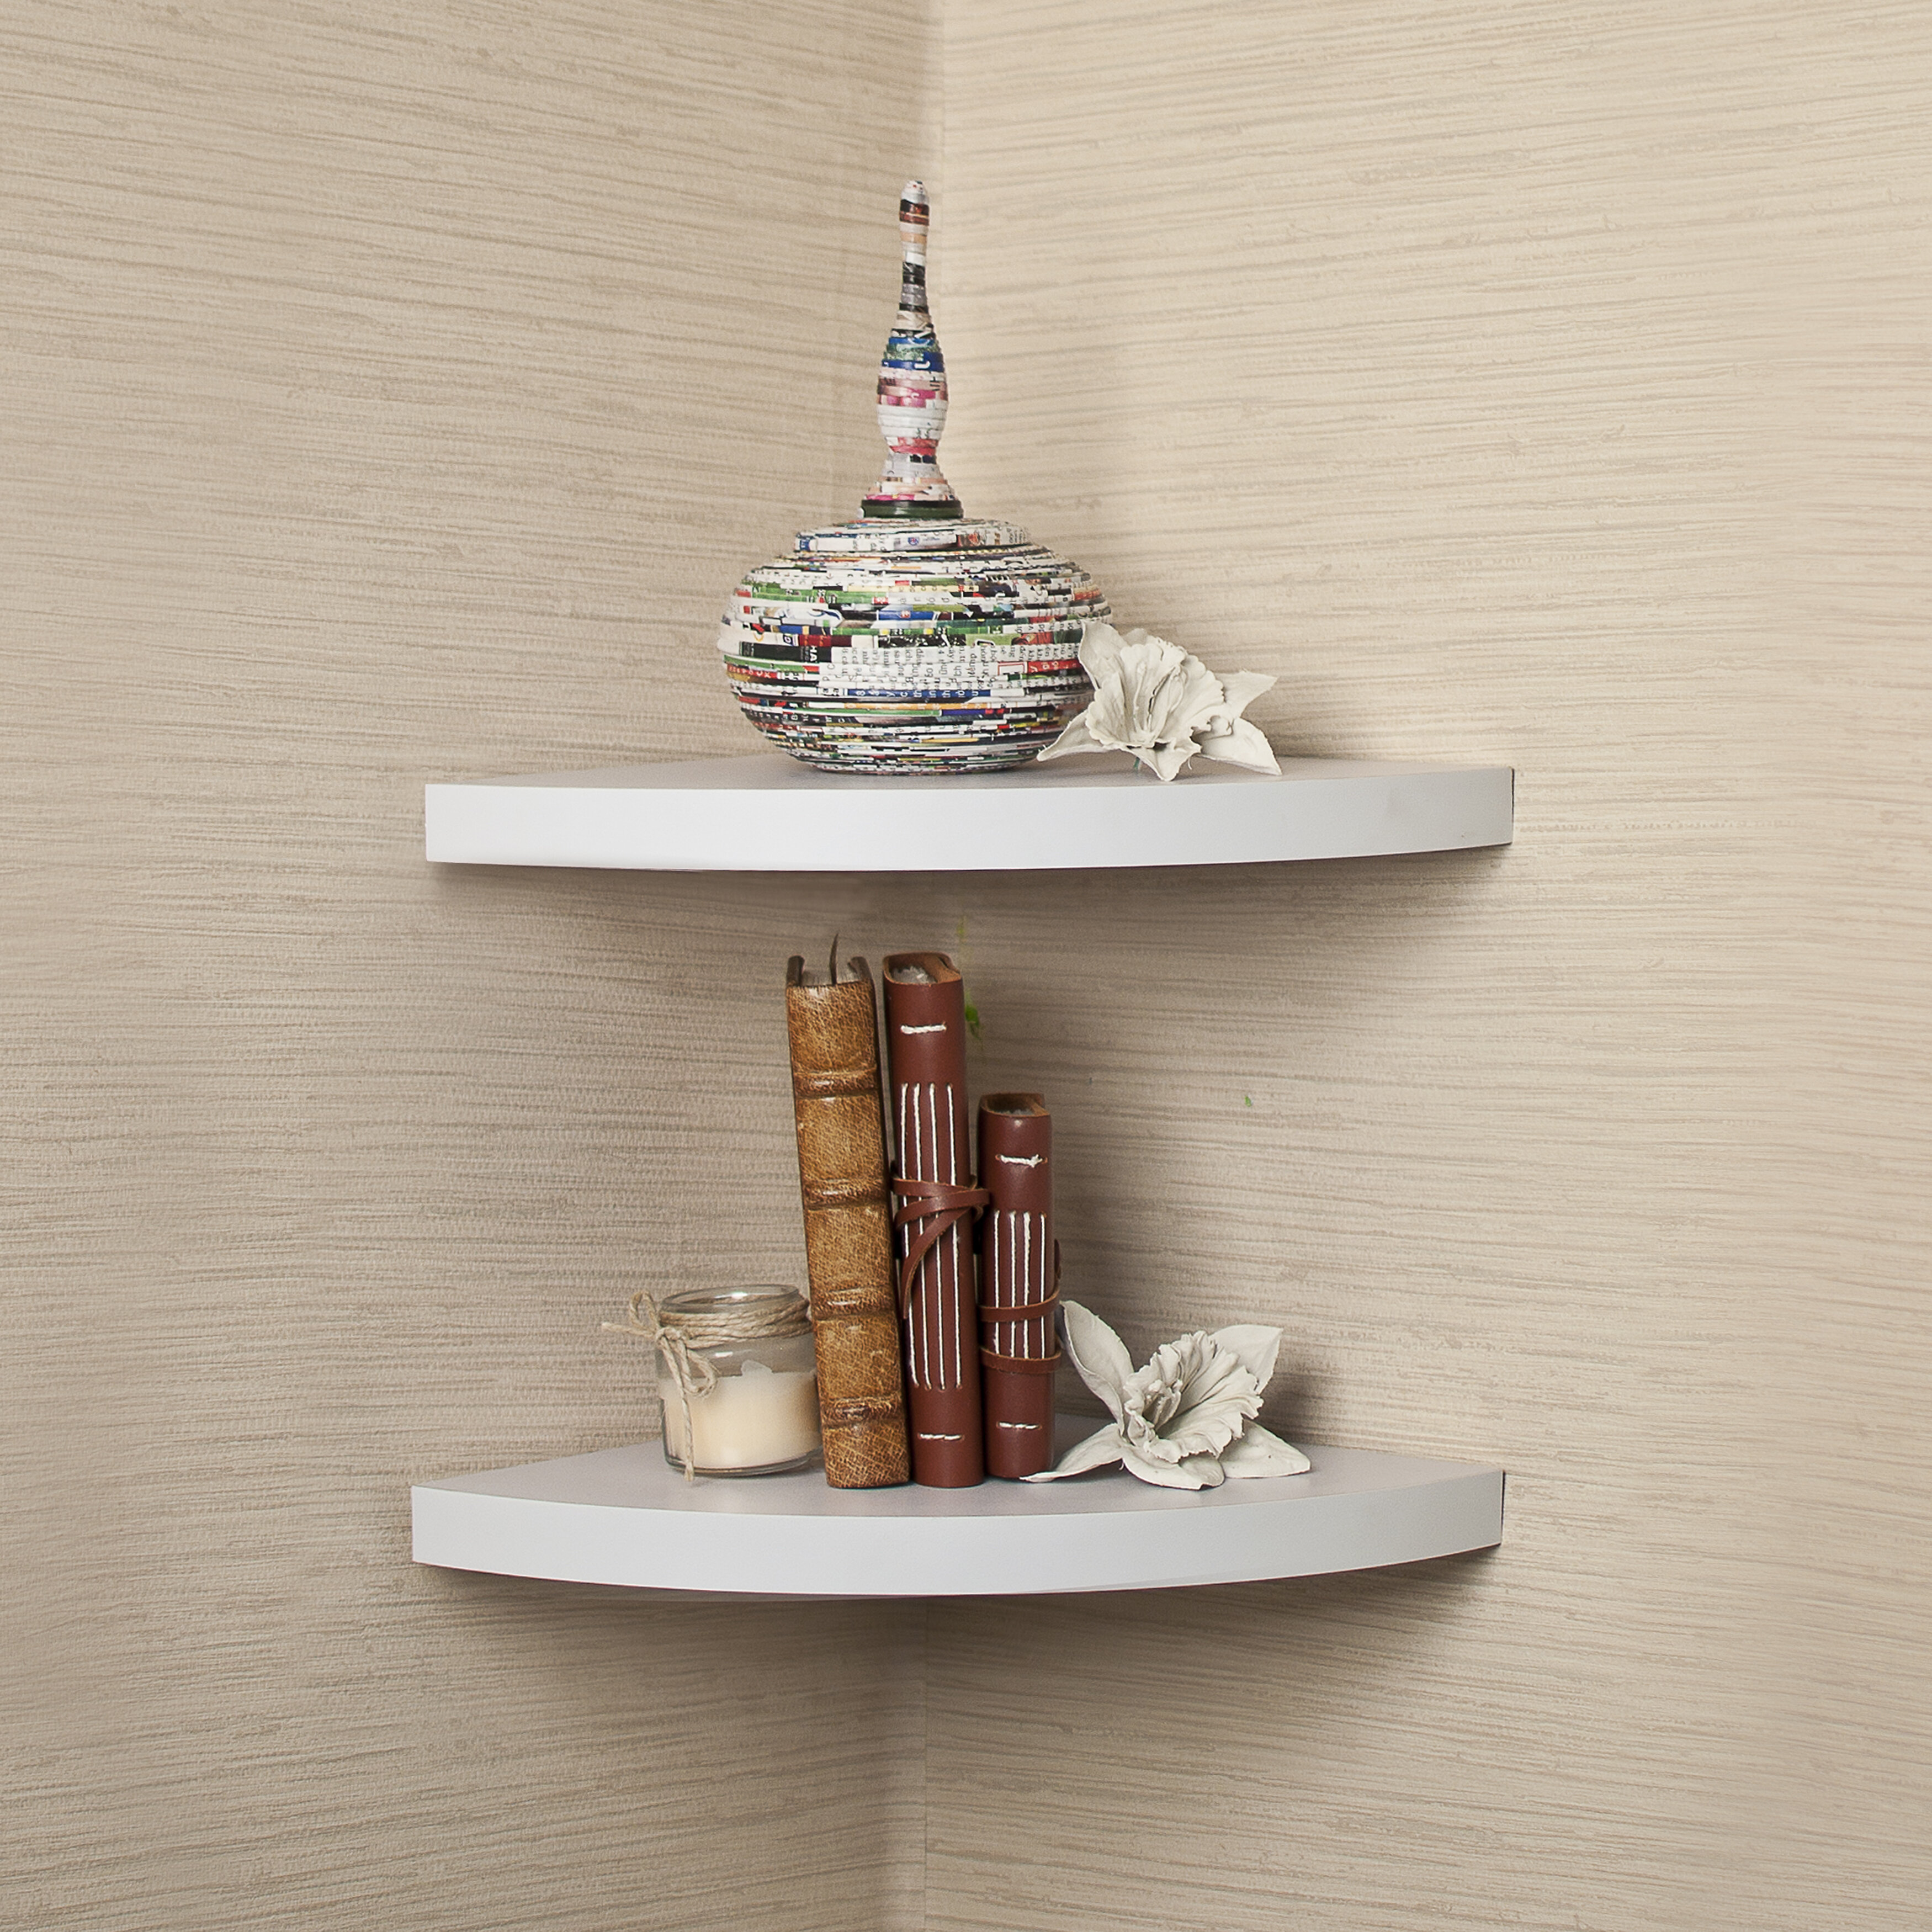 Beachcrest Home Rustic Corner Radial Shelf Reviews